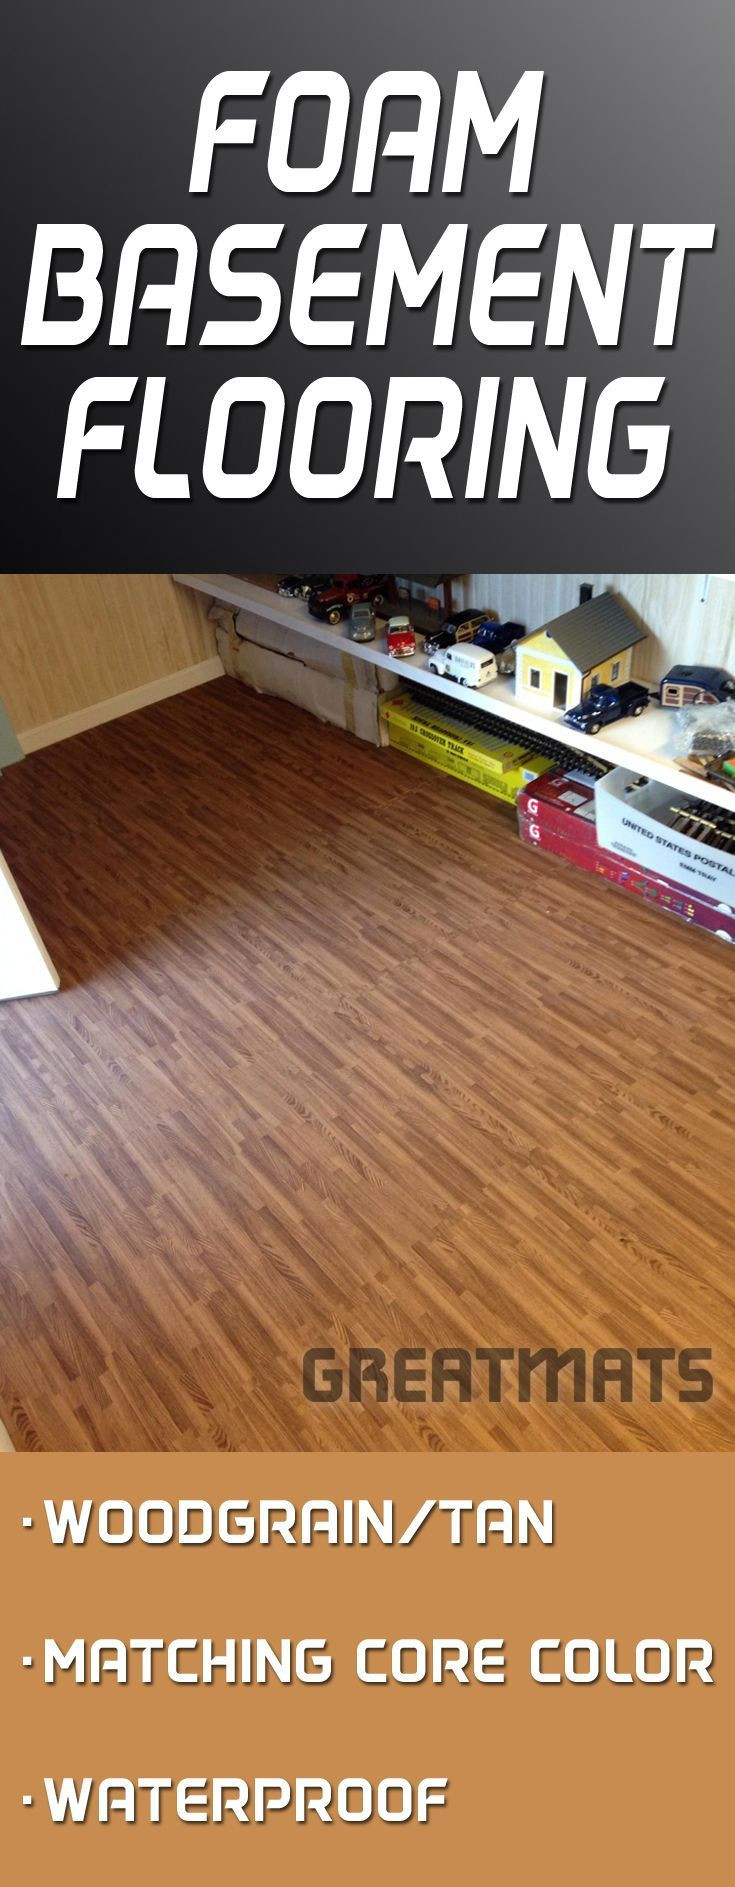 reversing hardwood flooring direction of 19 best basement ideas unfinished images on pinterest basement regarding reversible wood grain foam tiles offer a cushioned waterproof and durable basement floor solution